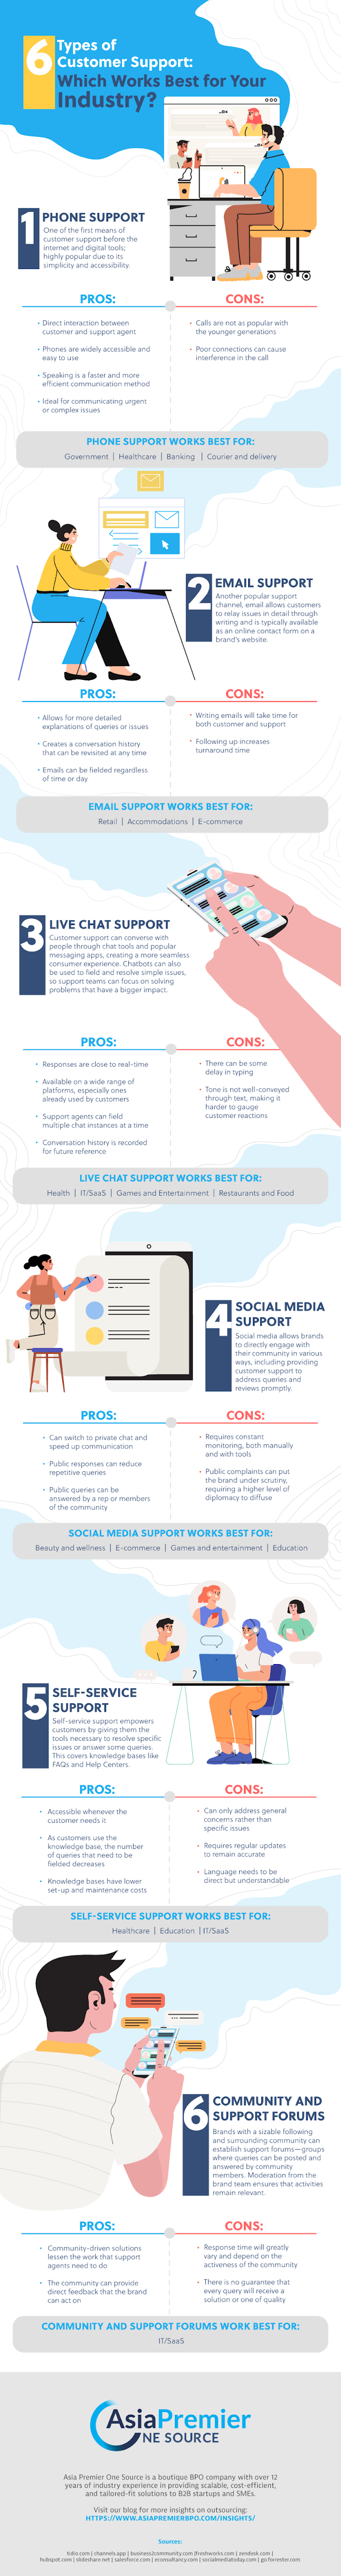 6 Types of Customer Support: Which Works Best for Your Industry? #infographic #Business #Customer Support #Workers #infographics